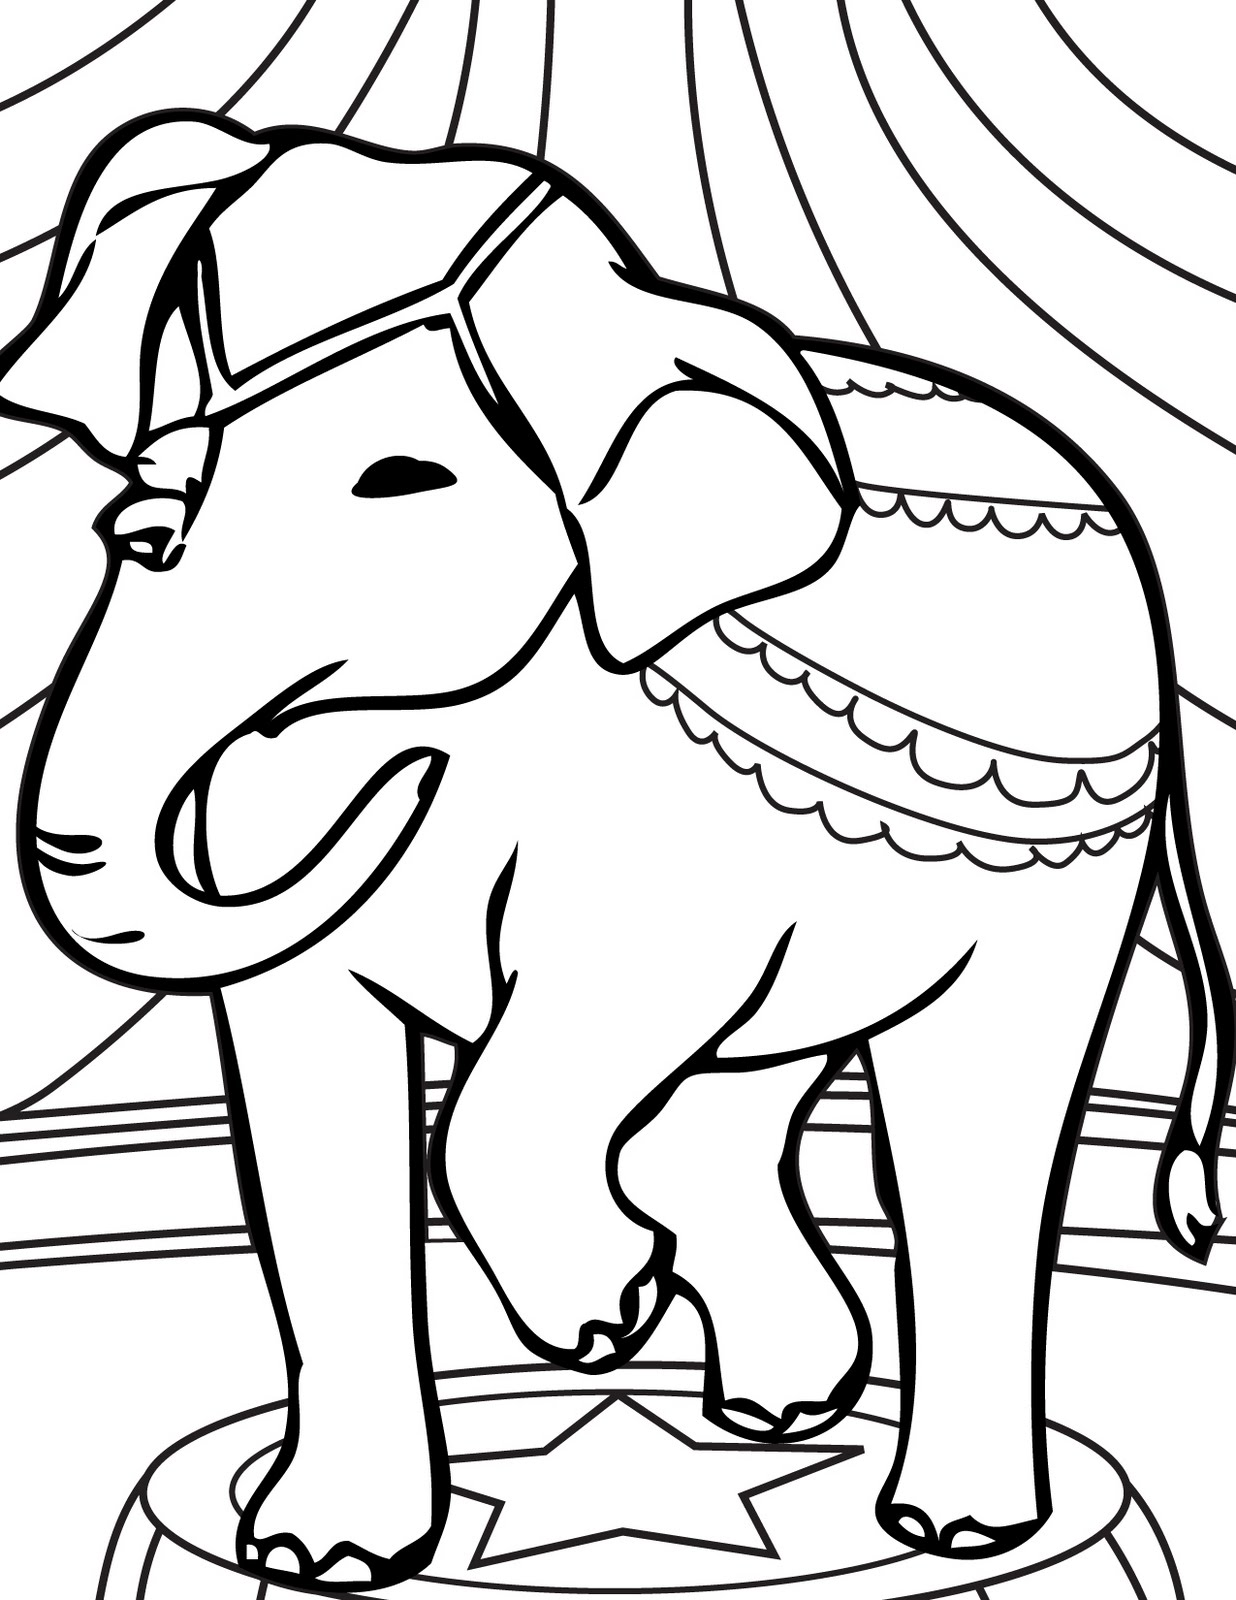 1236x1600 Circus Elephant Coloring Pages